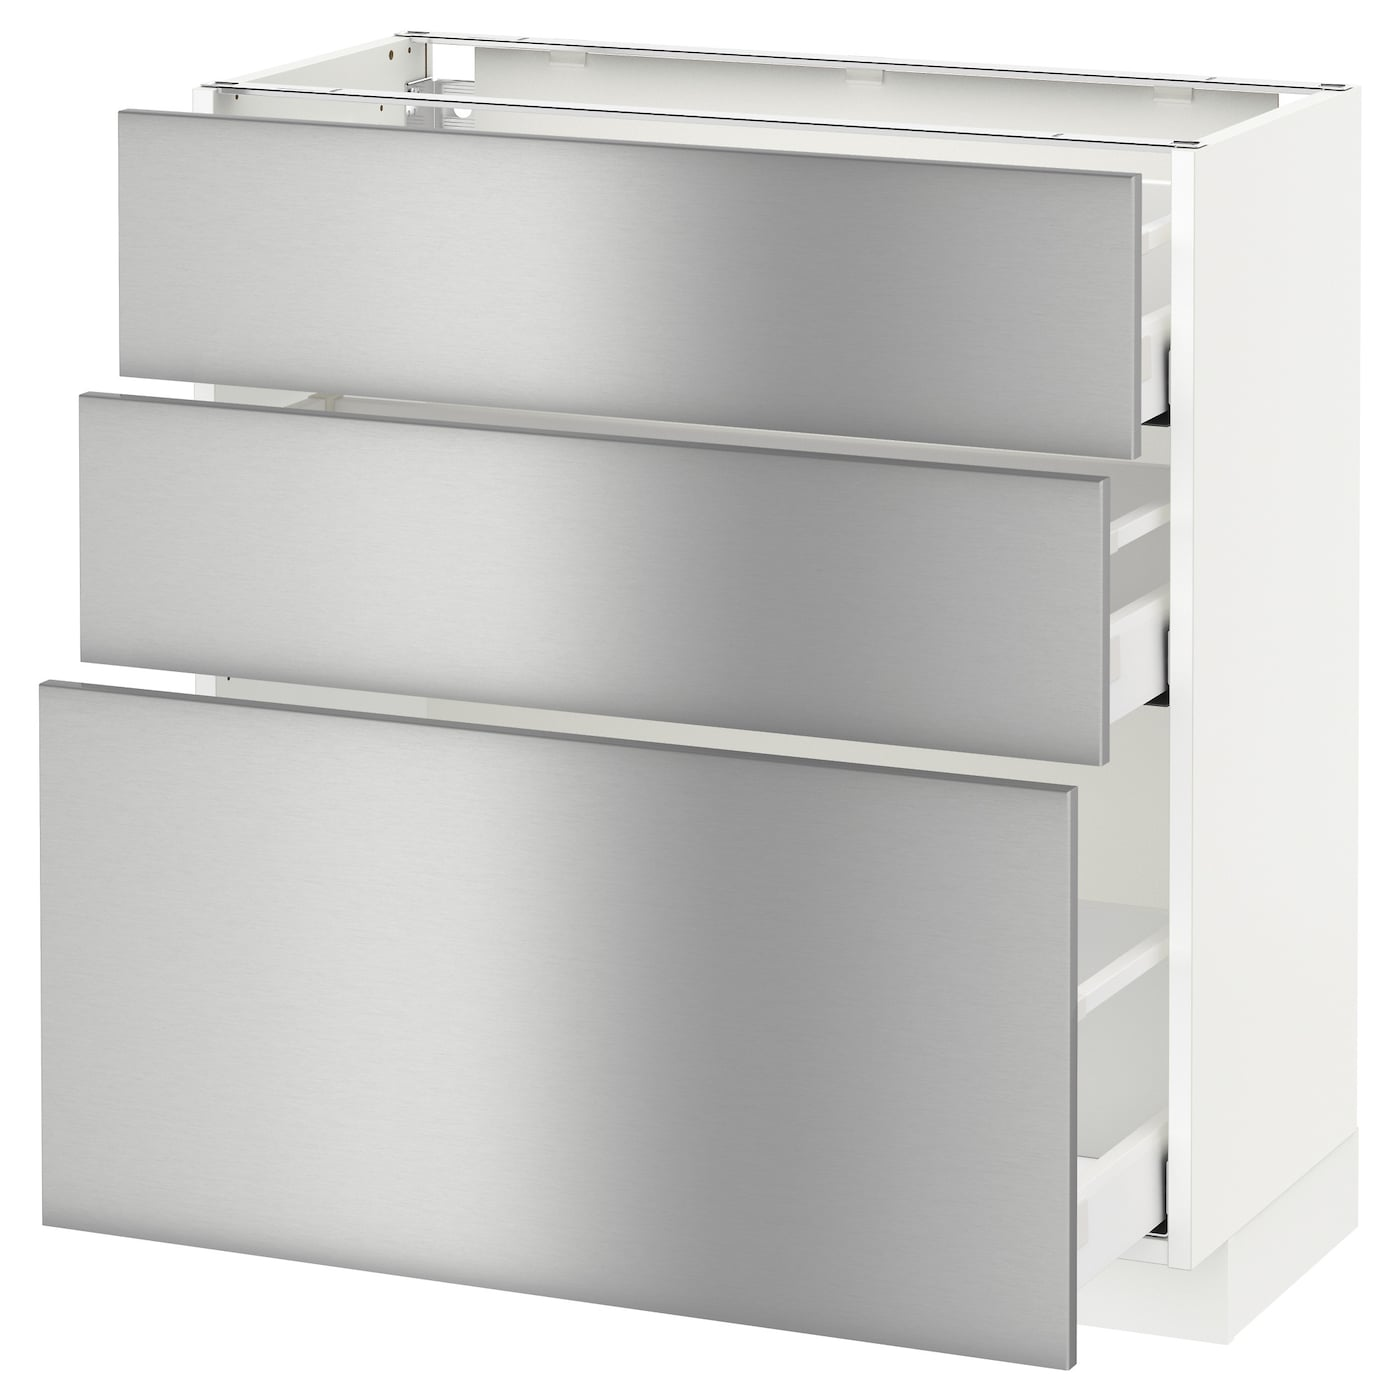 Ikea cabinets for Metal lockers ikea